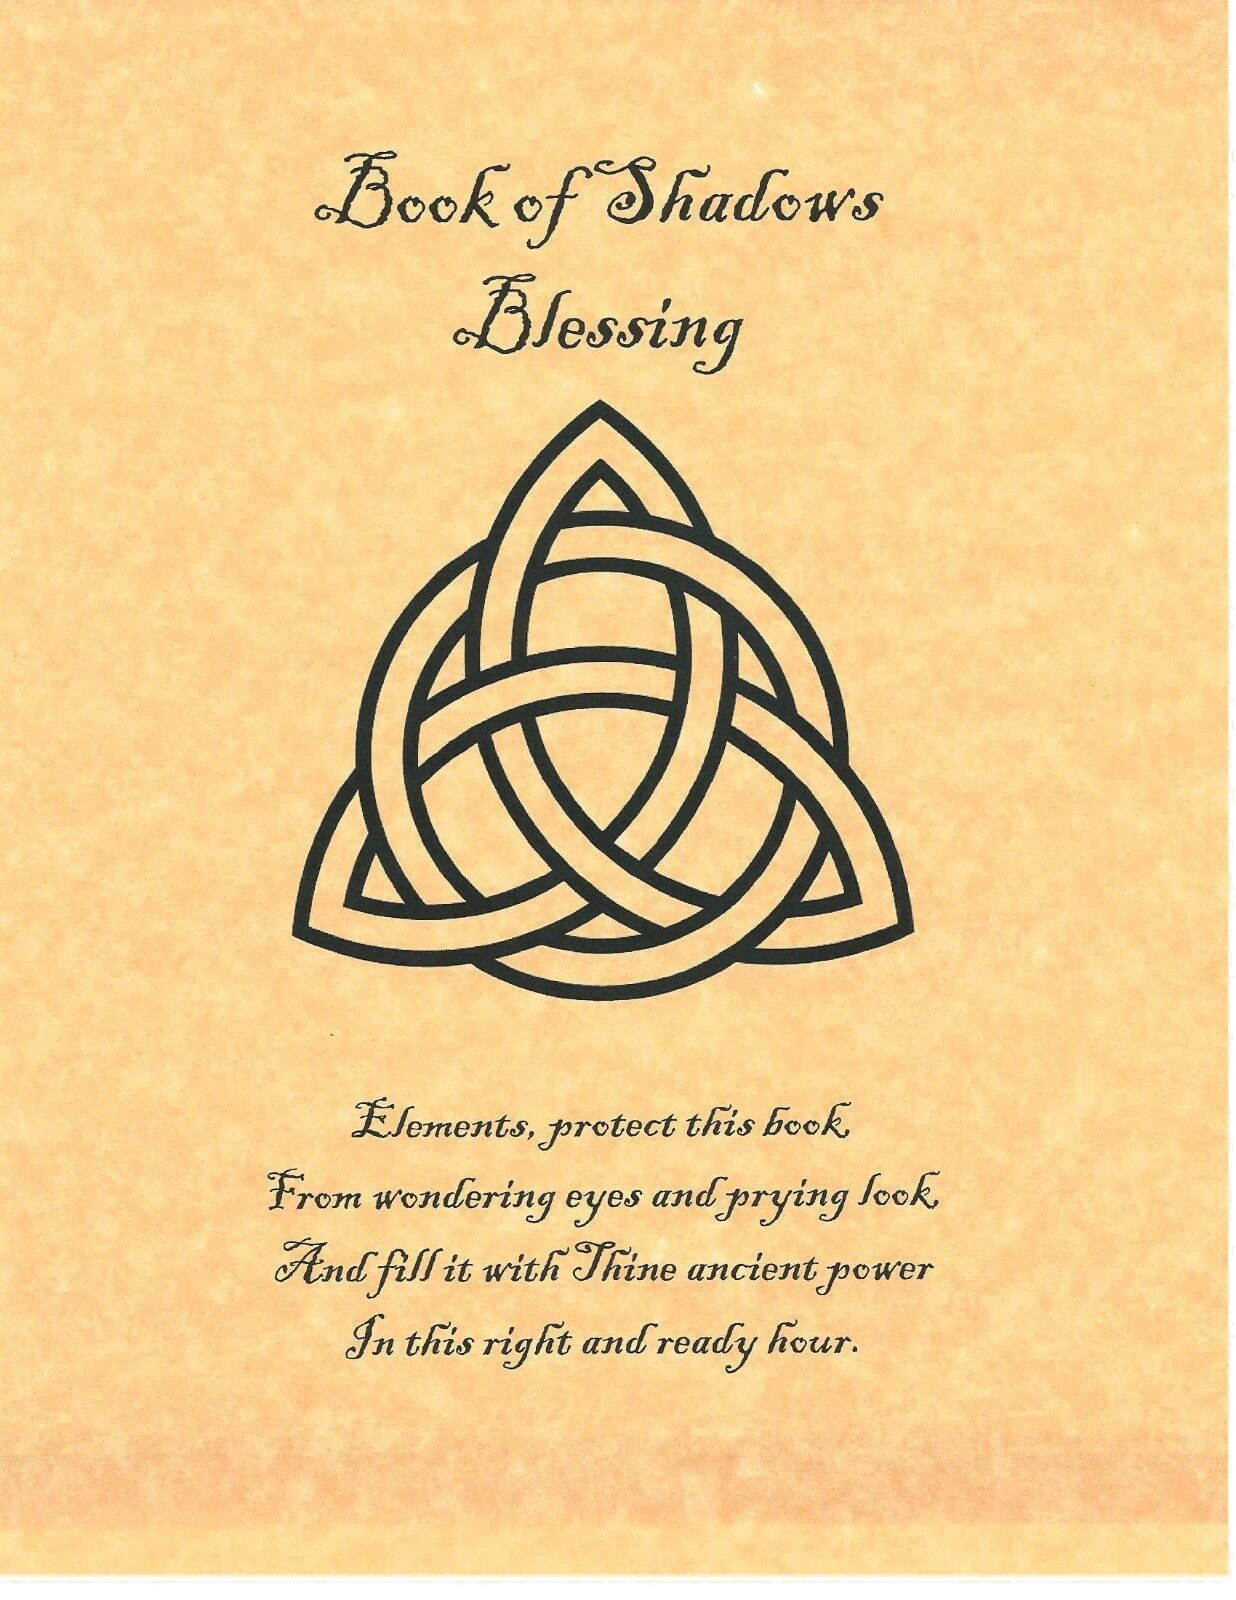 Book Of Shadows Spell Pages Blessing Page Triquetra Wicca Witchcraft Bos Ebay Wiccan Spell Book Book Of Shadows Charmed Book Of Shadows